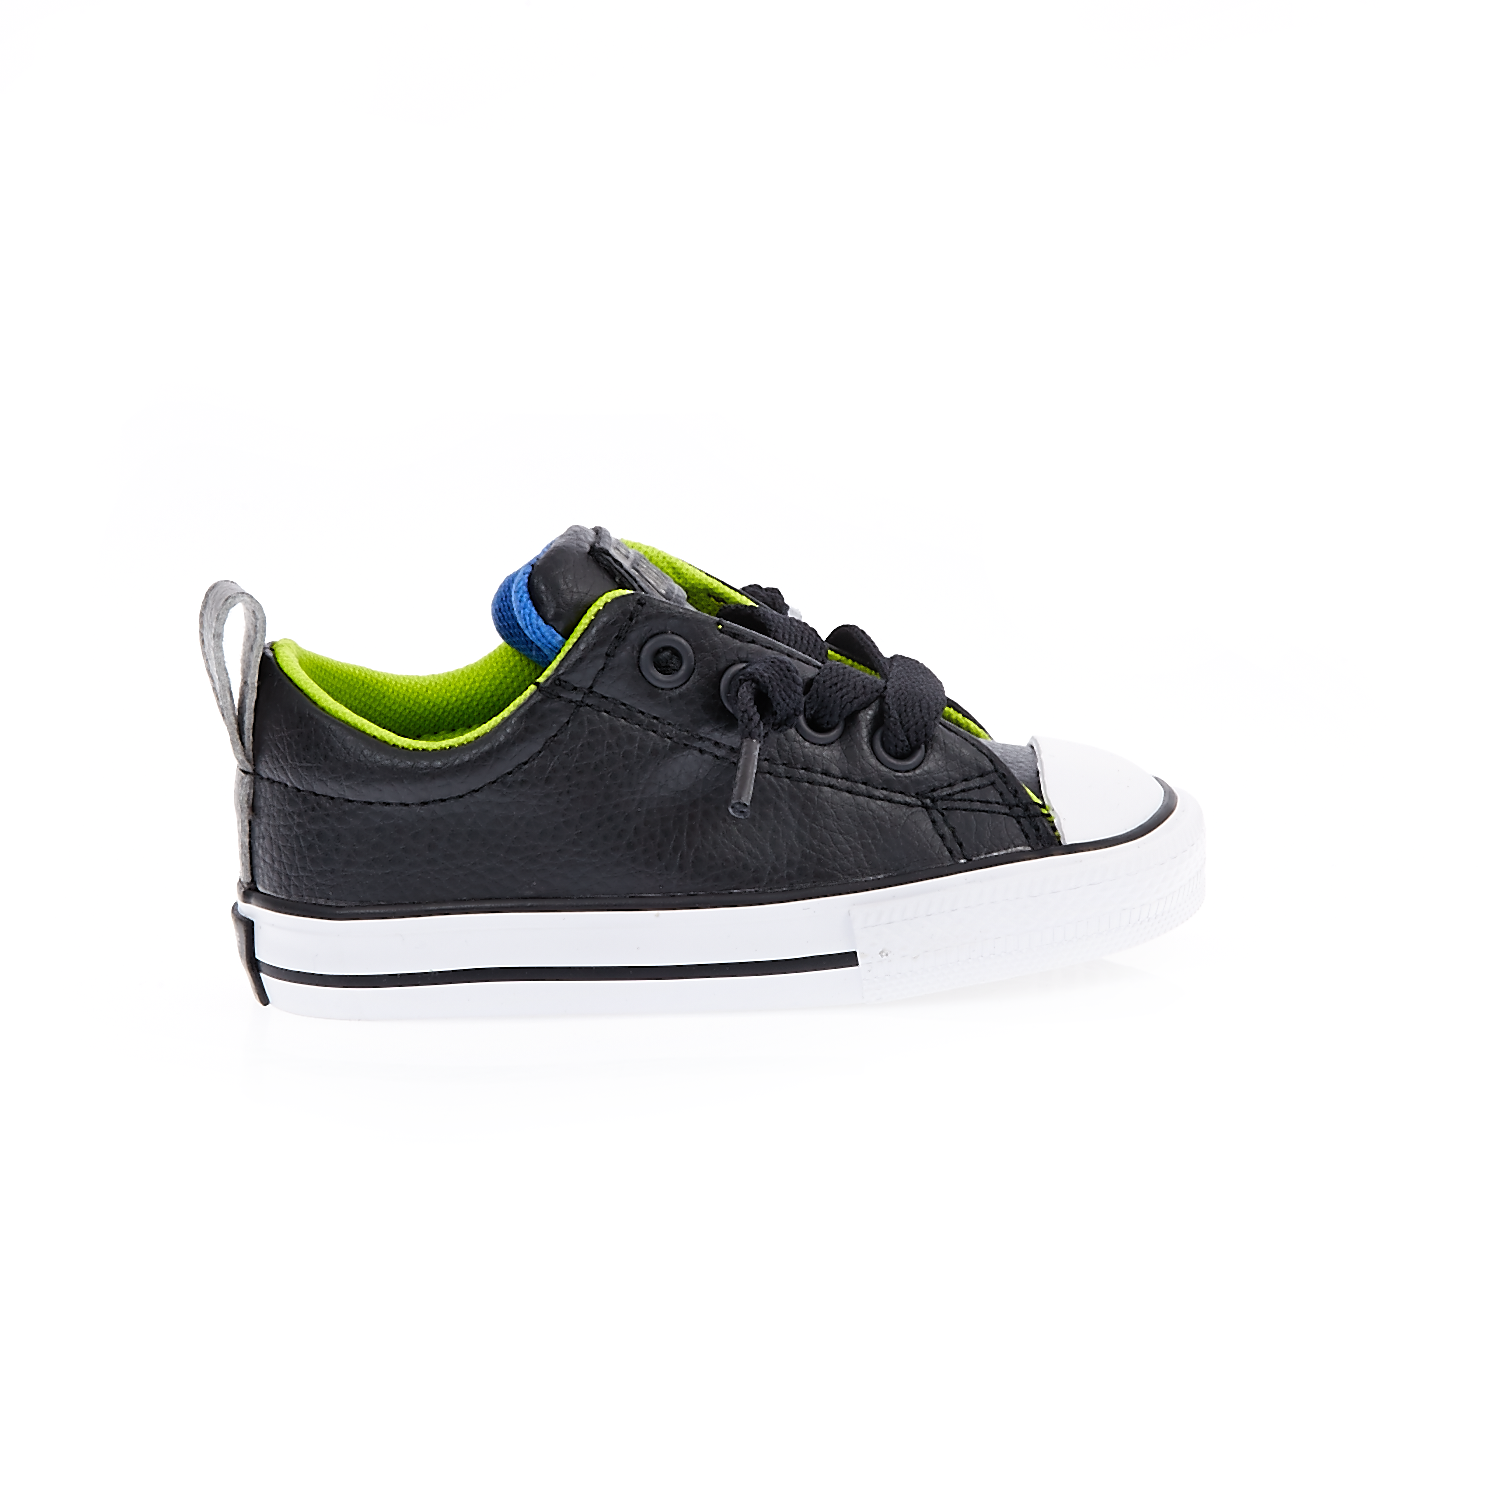 CONVERSE - Βρεφικά παπούτσια Chuck Taylor All Star Street S μαύρα παιδικά baby παπούτσια sneakers